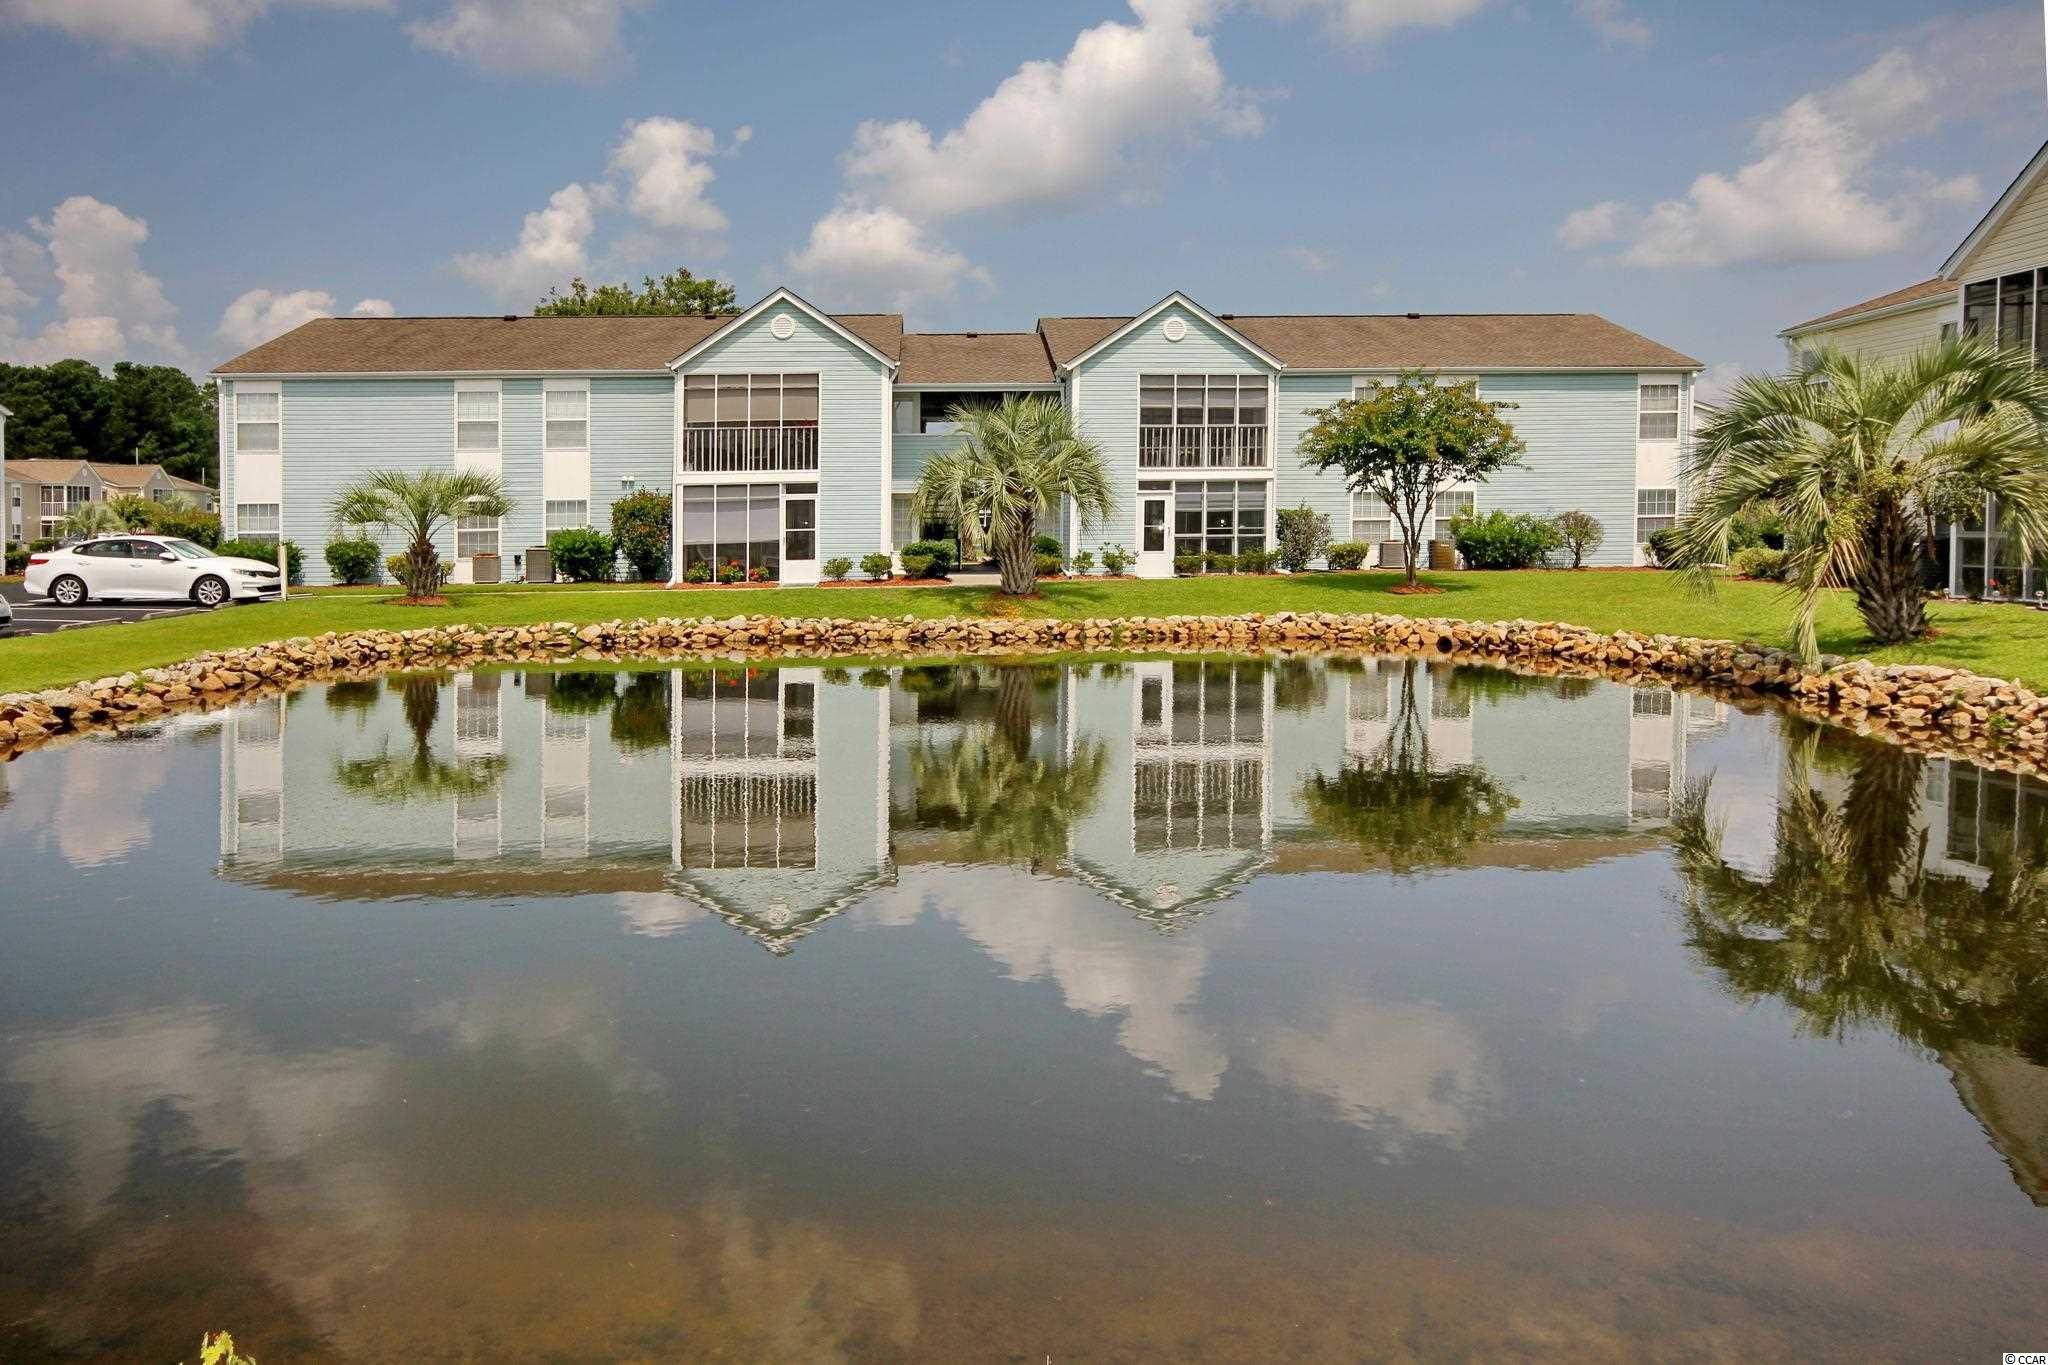 This condo is located in the popular South Bay Lakes community. 3 bedroom/2 bath with a beautiful screened in porch that overlooks the pond. This condo provides you close proximity to all the attractions and amenities of Myrtle Beach, with fine dining, wonderful world-class entertainment, fishing piers, and exciting shopping experiences on the Grand Strand.